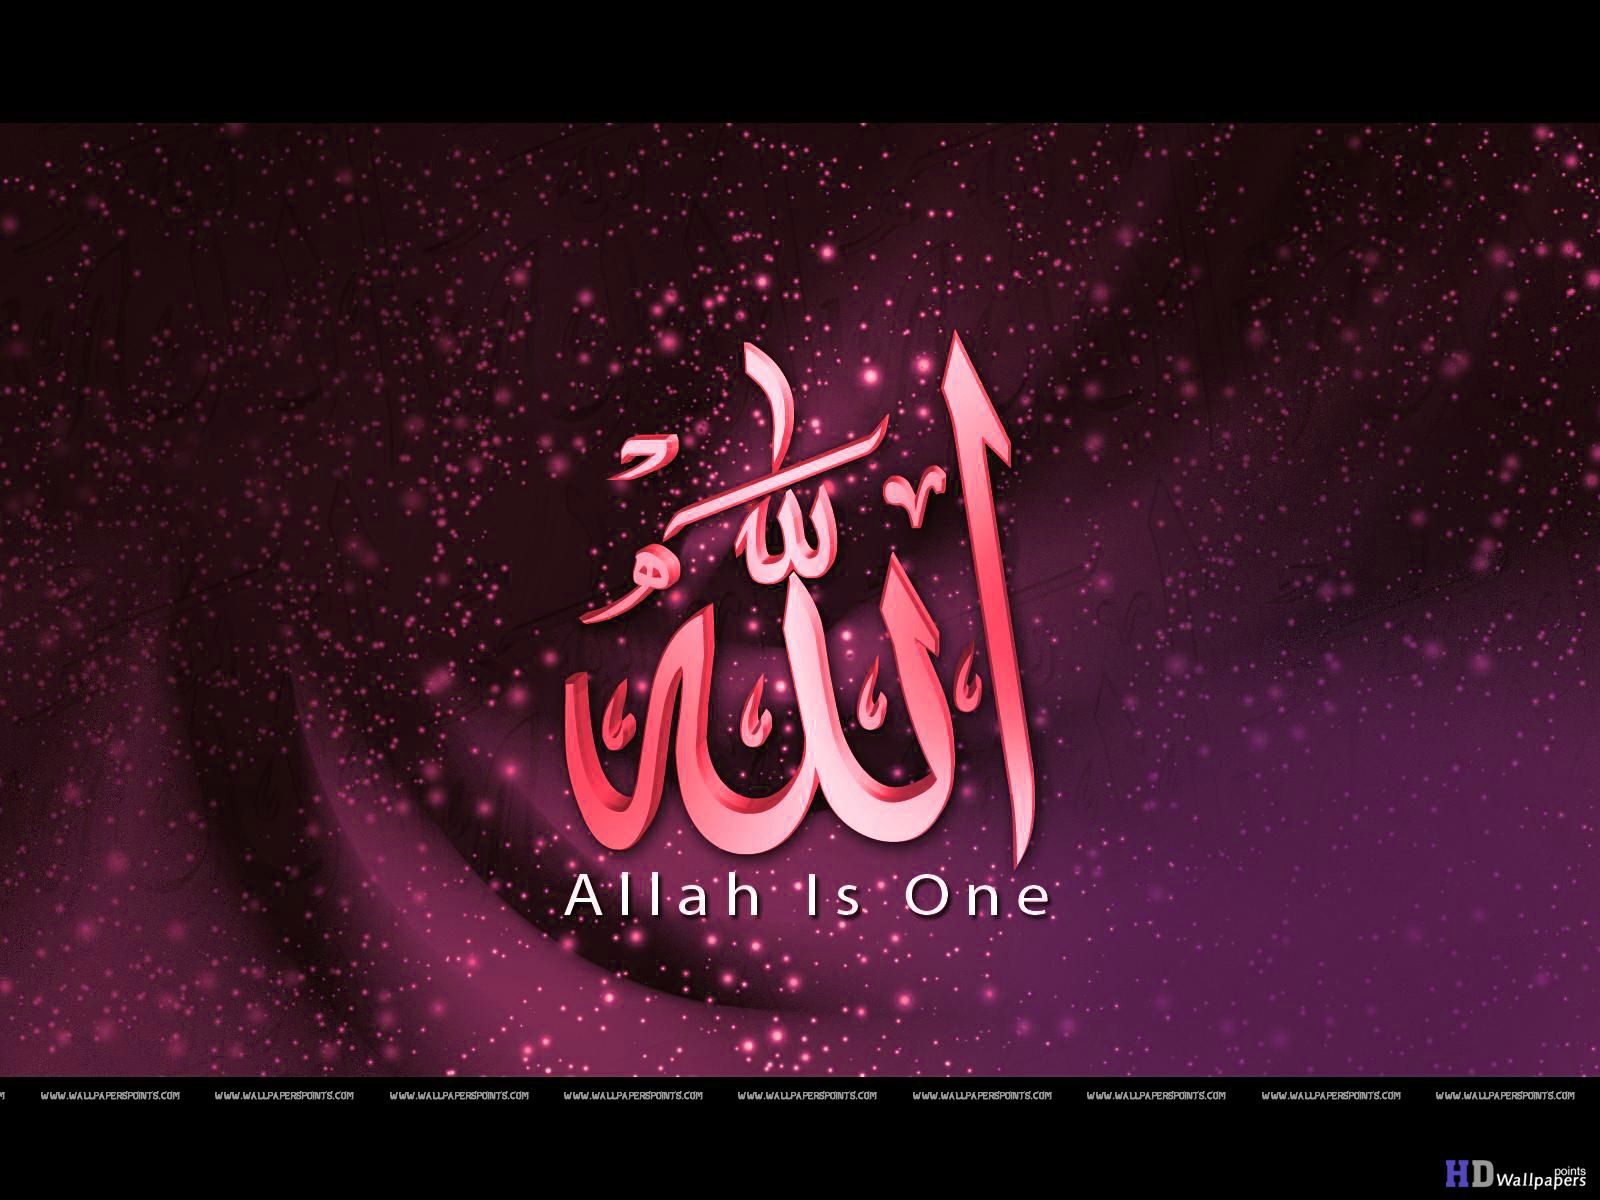 Islamic 2013 HD Wallpapers Desktop Background HD Wallpaper 1600x1200